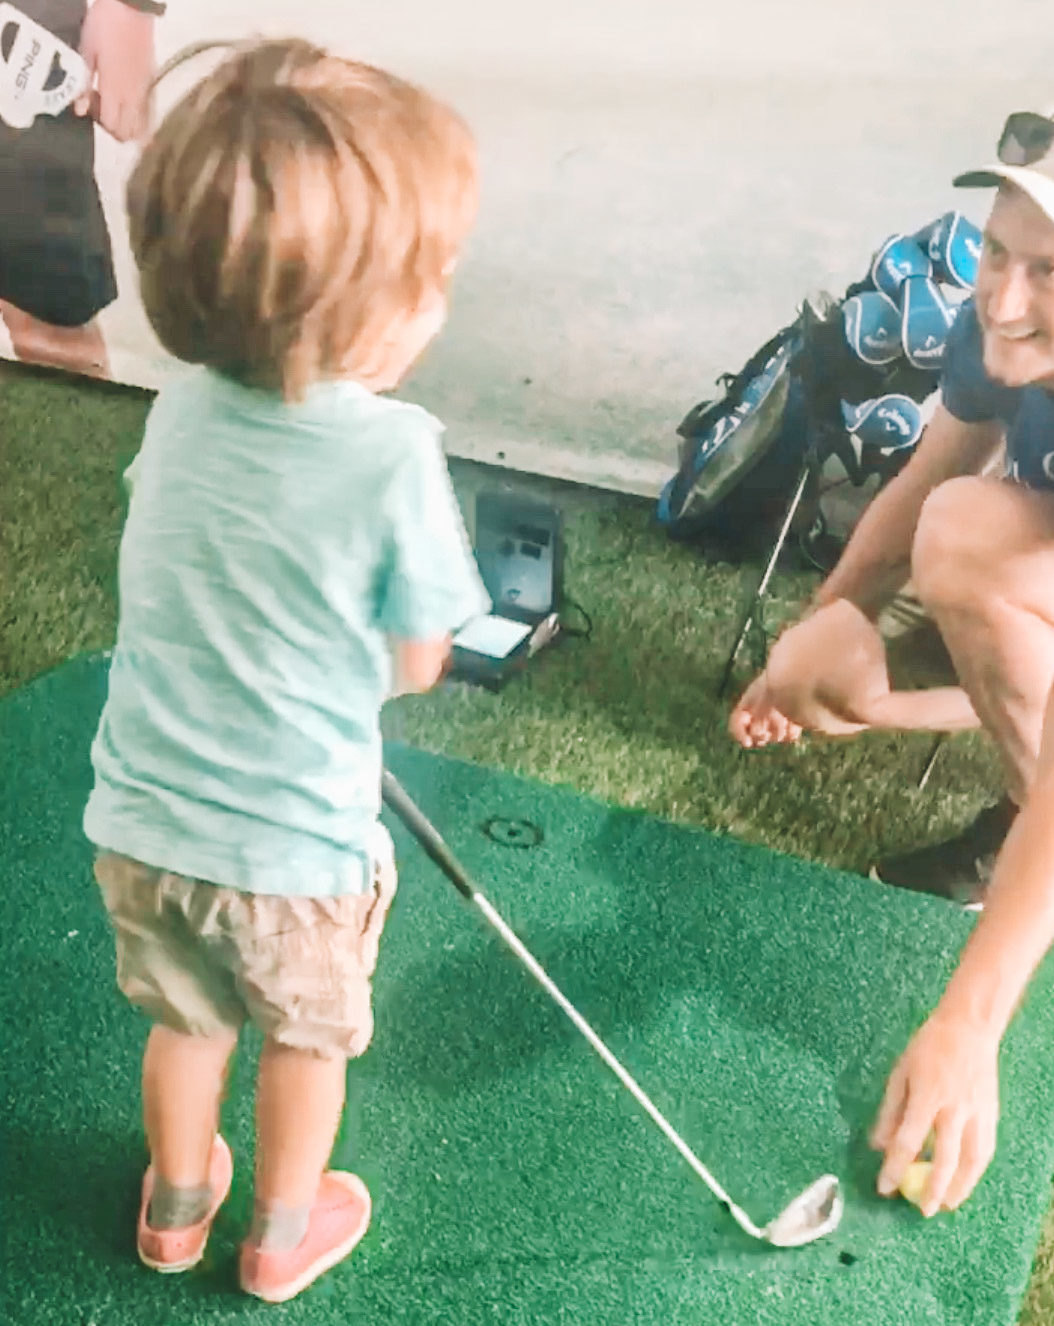 Family-Friendly Junior Experience at the USGA's 119th U.S. Open in Pebble Beach 45